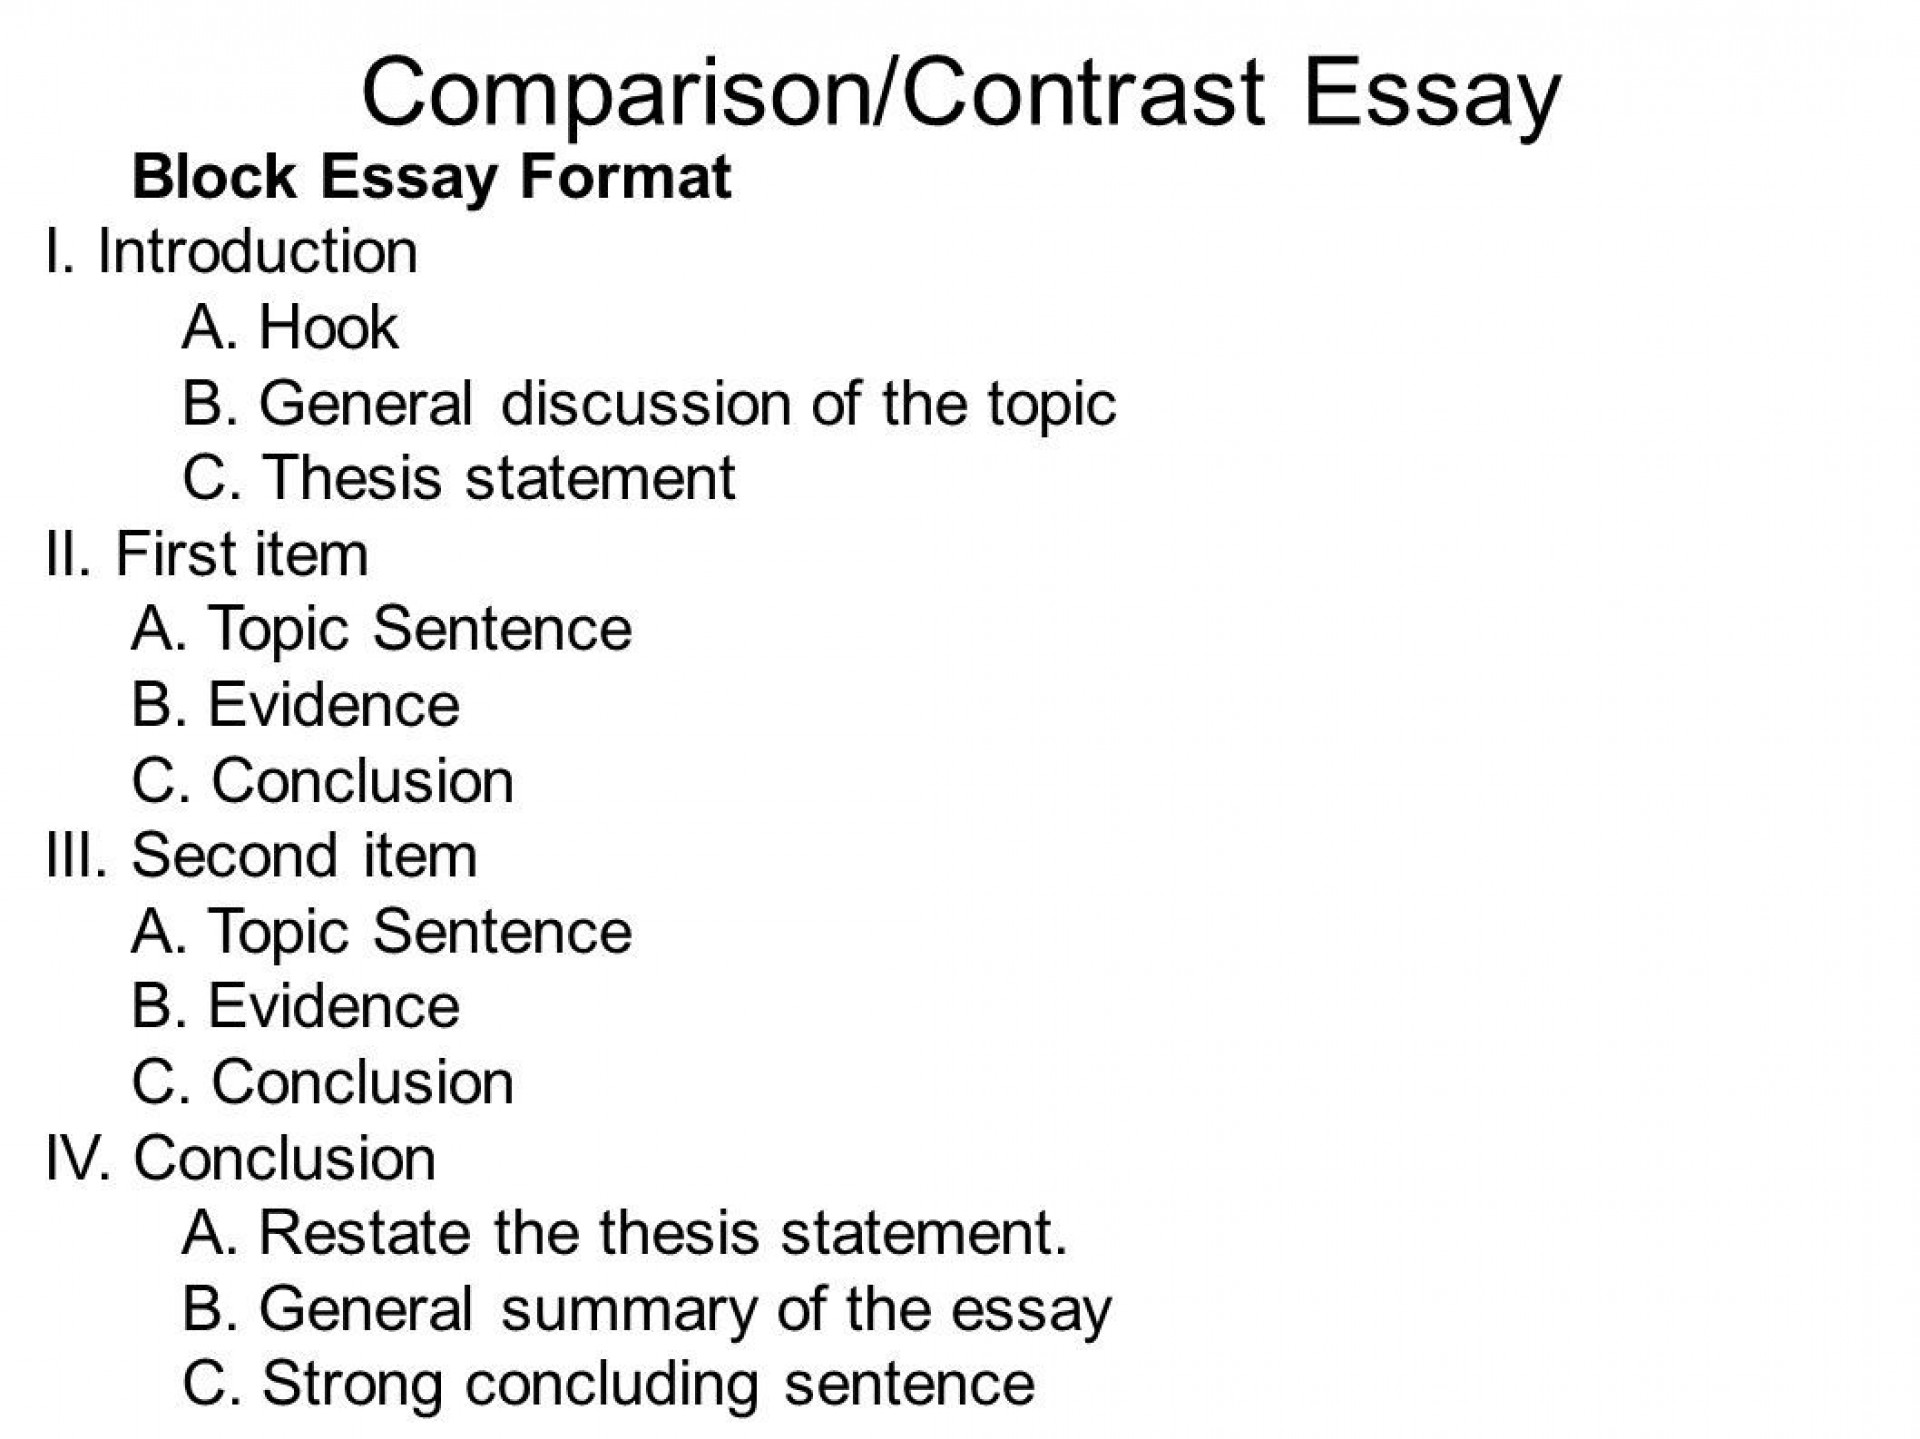 008 Writing Compare And Contrast Essay Example Magnificent A Mla Format Ppt Of Comparison Pdf 1920